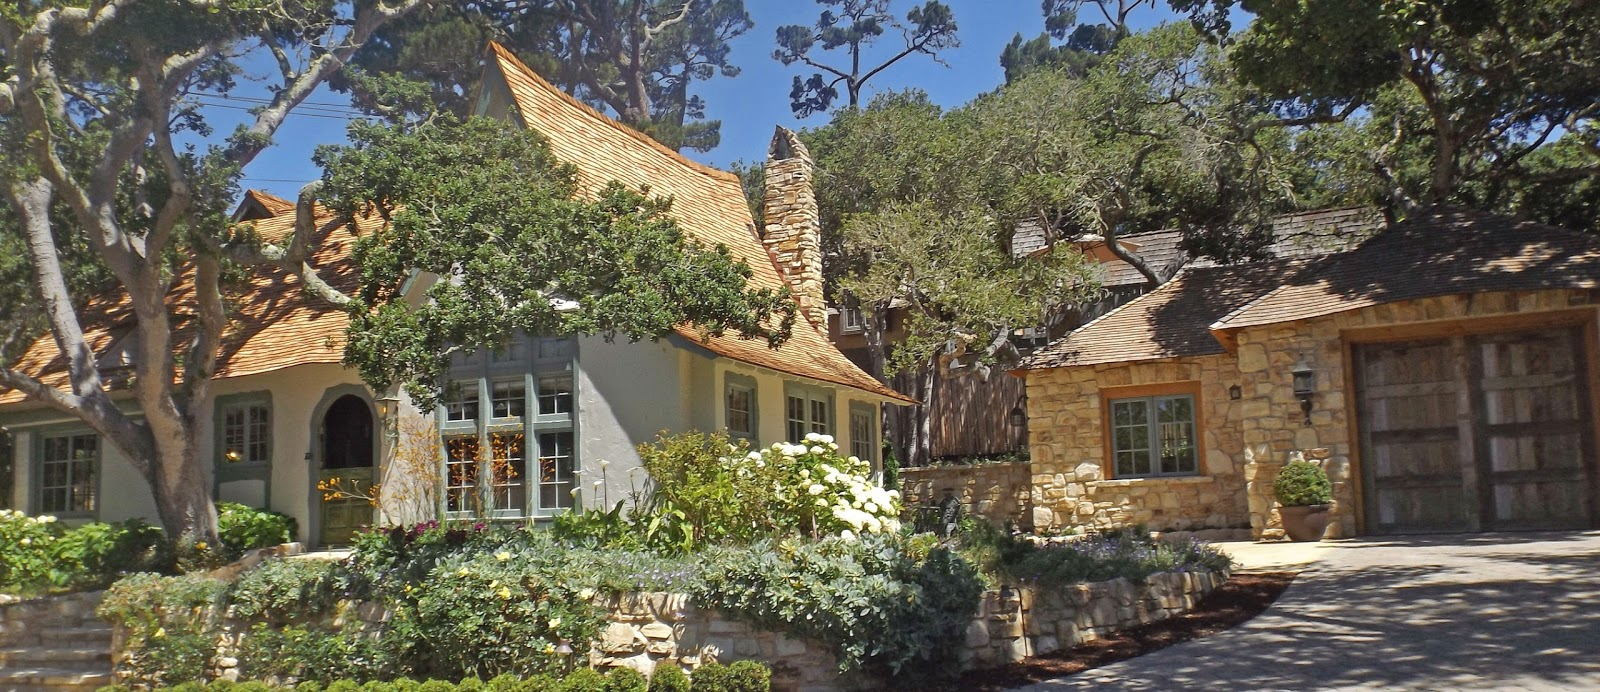 Carmel Heritage Society Event Posts 2012 to 2016 - Index ...